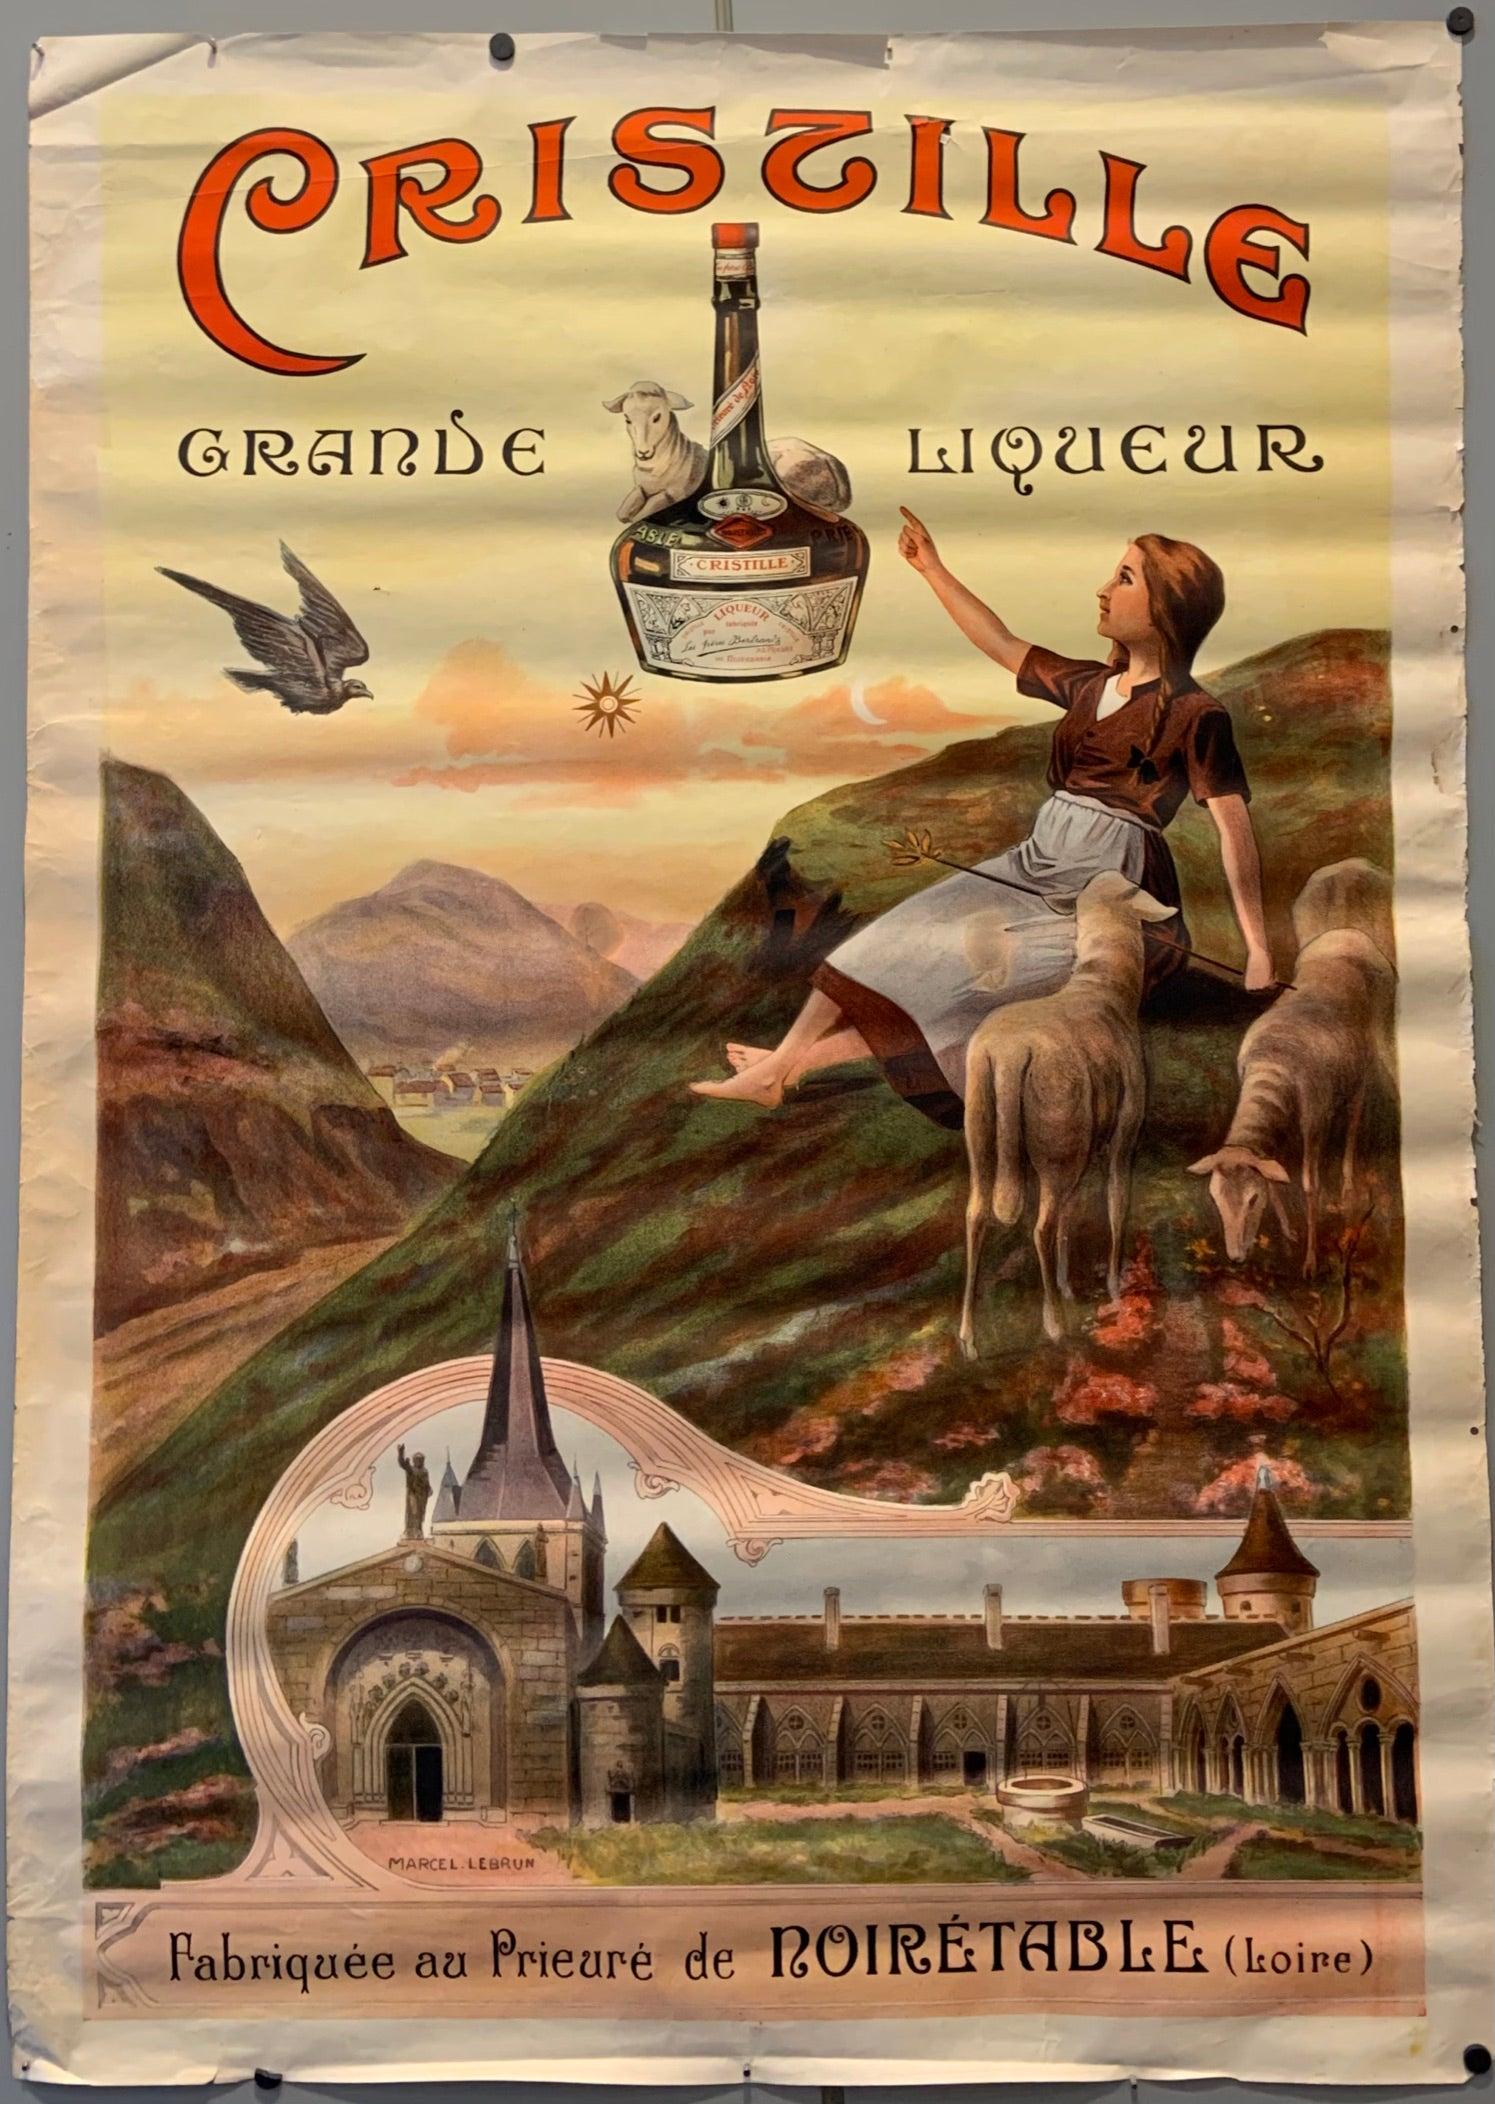 Poster for Crissille liqueur, showing a young woman sitting on a hill with sheep.